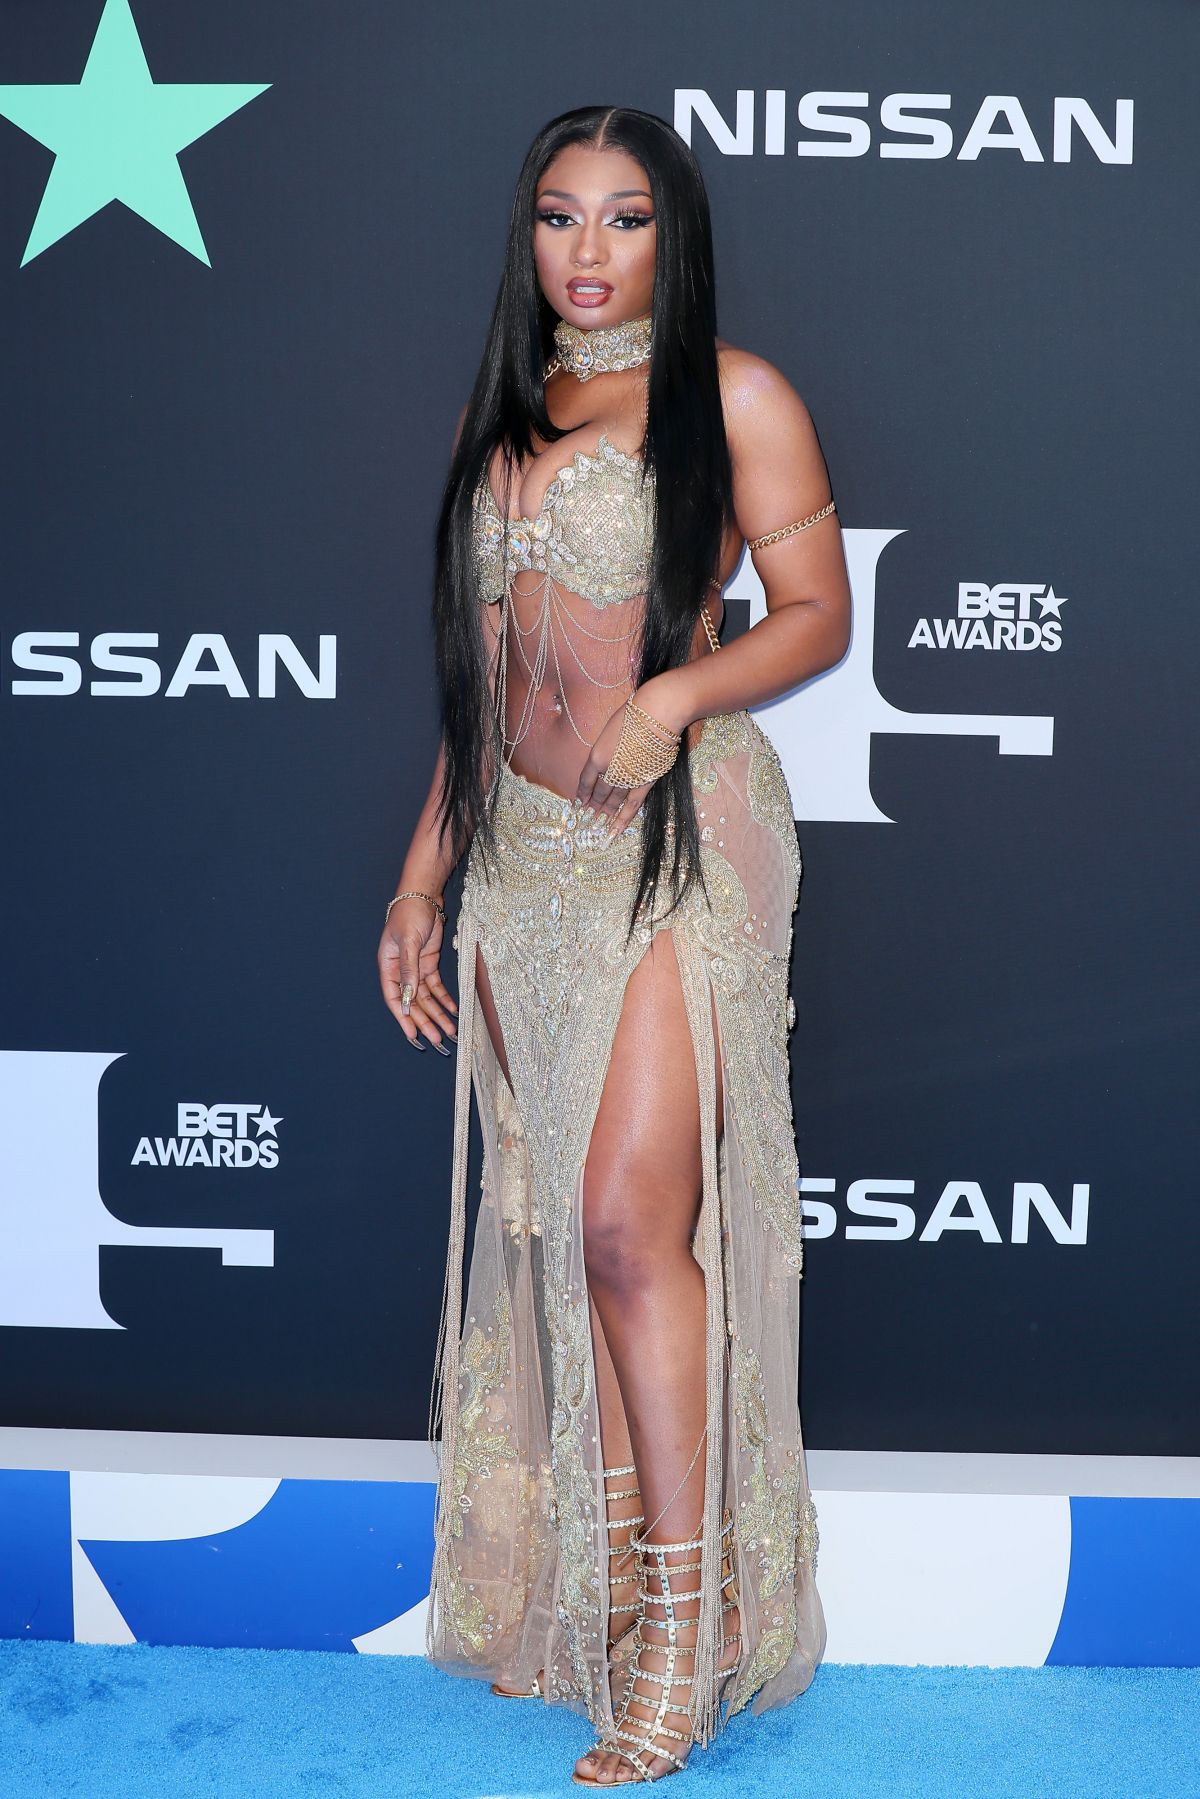 megan-thee-stallion-post-first-photo-since-shooting-incident